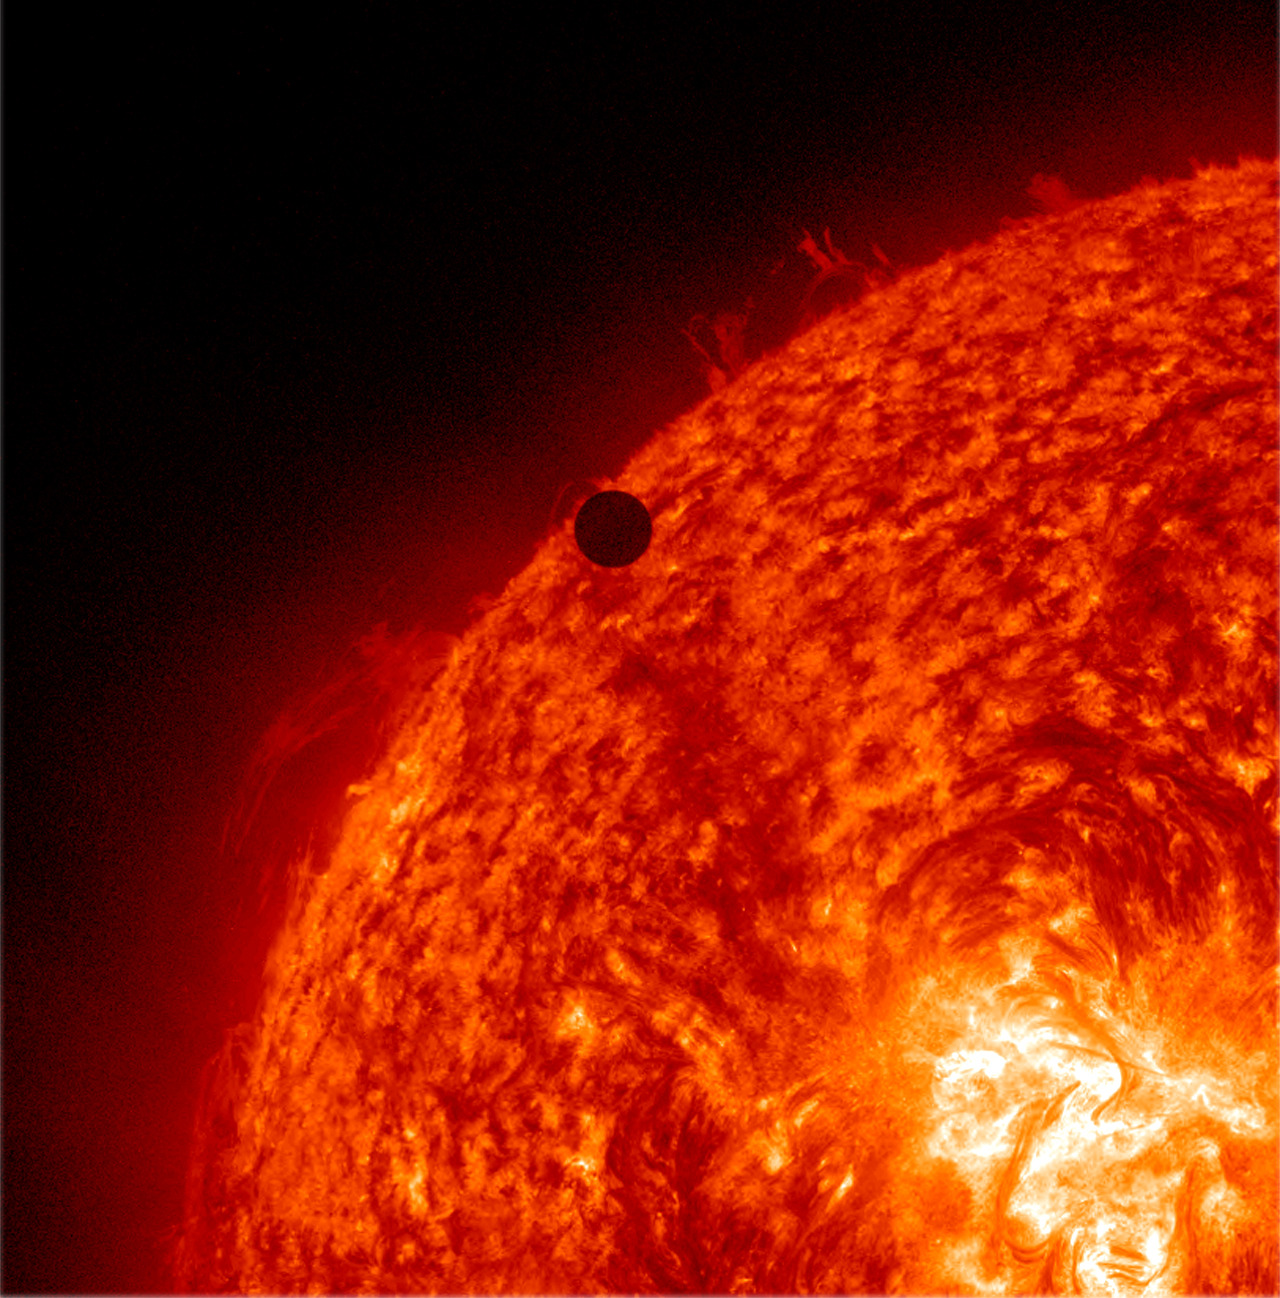 infinity-imagined:  Transit of Venus across the Sun